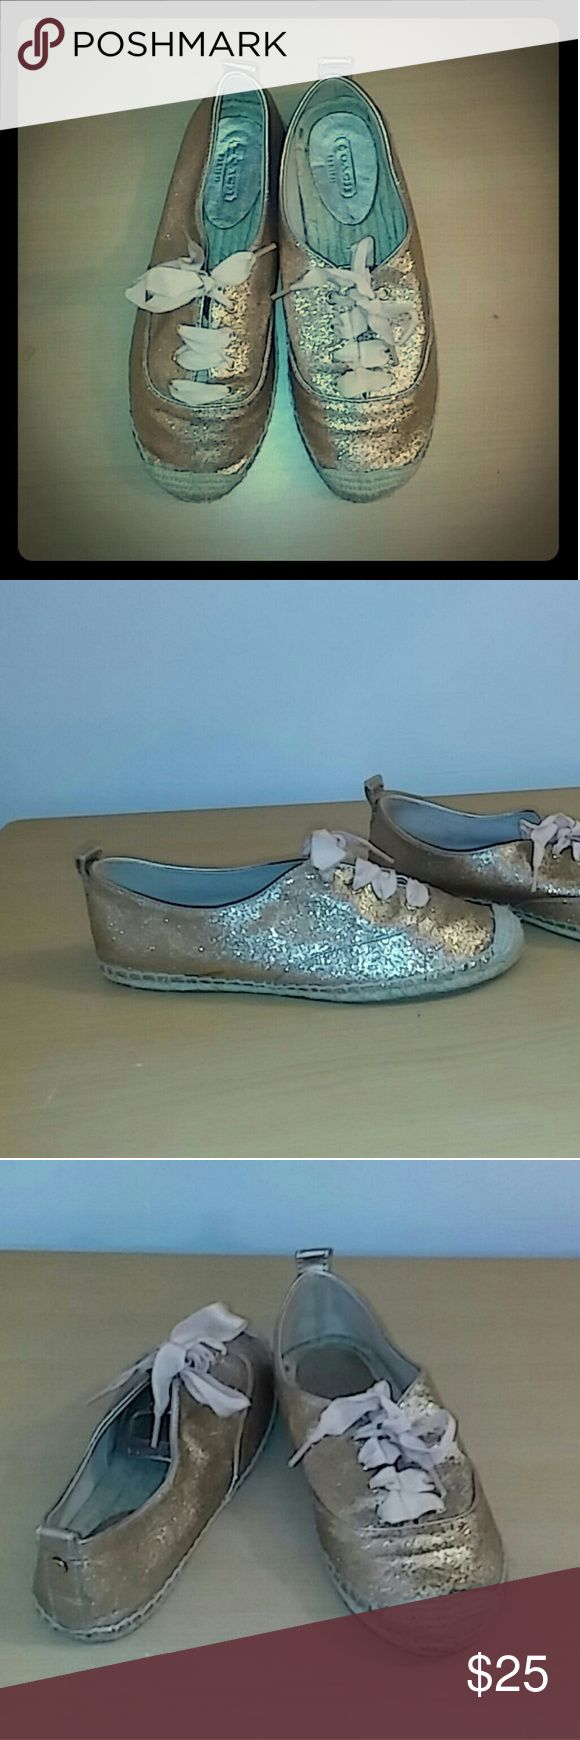 Coach tennis shoes FREE GIFT W/ PURCHASE Peach glitter sisal rope soles?? Cute for spring/summer?? One shoe has a slight blemish looks like it might be glue from the manufacturing process Coach Shoes Sneakers